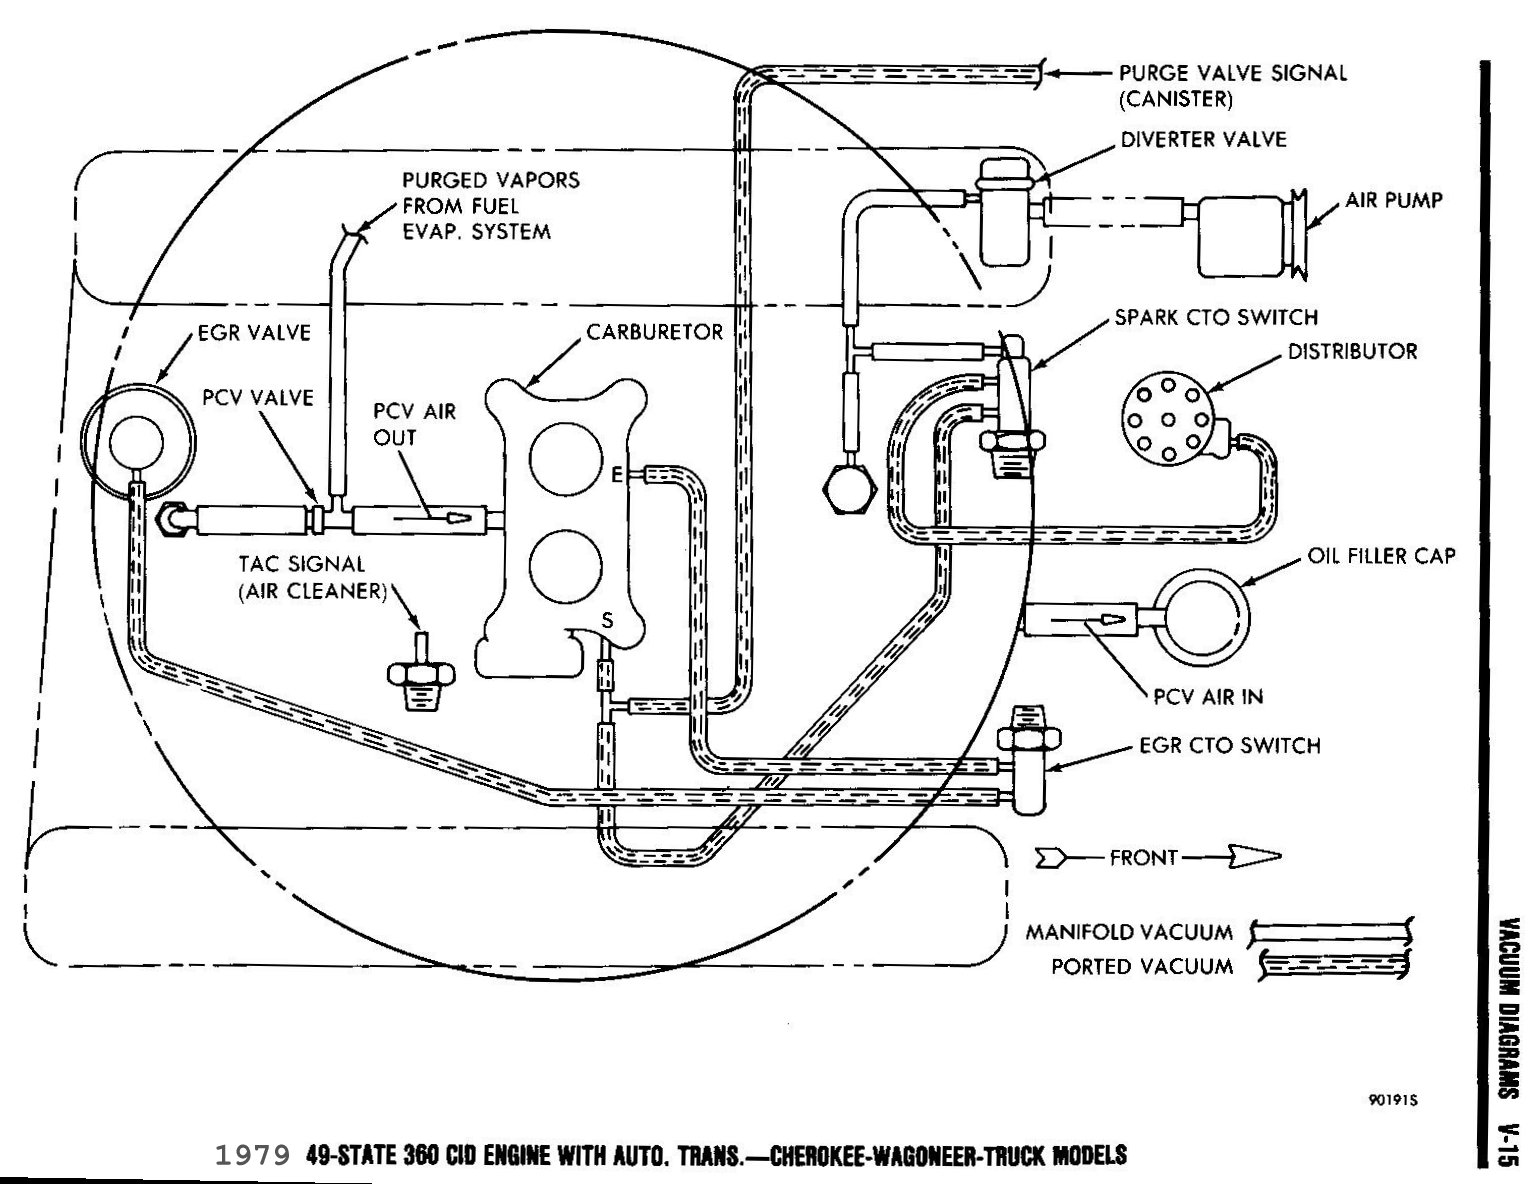 79 FSJ 360_Vacuum tom 'oljeep' collins fsj vacuum layout page 1978 Corvette Wiring Diagram at crackthecode.co